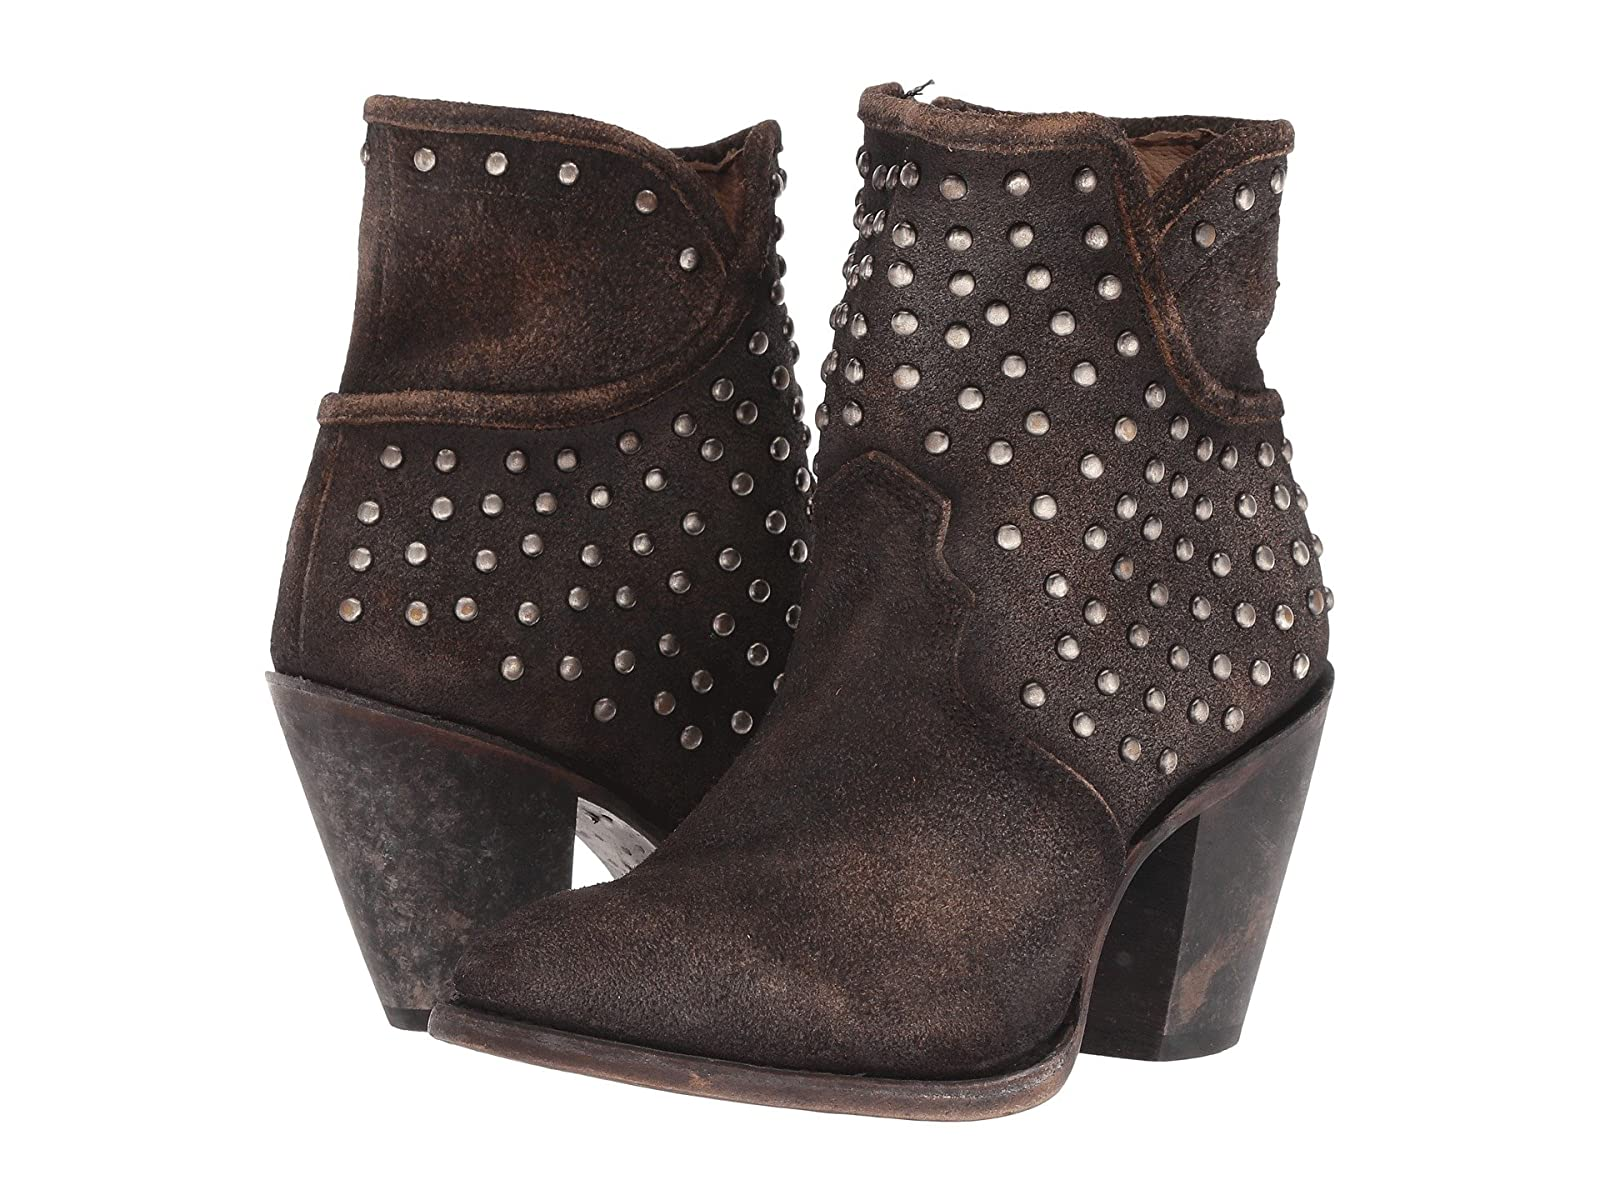 Corral Boots C3347Affordable and distinctive shoes